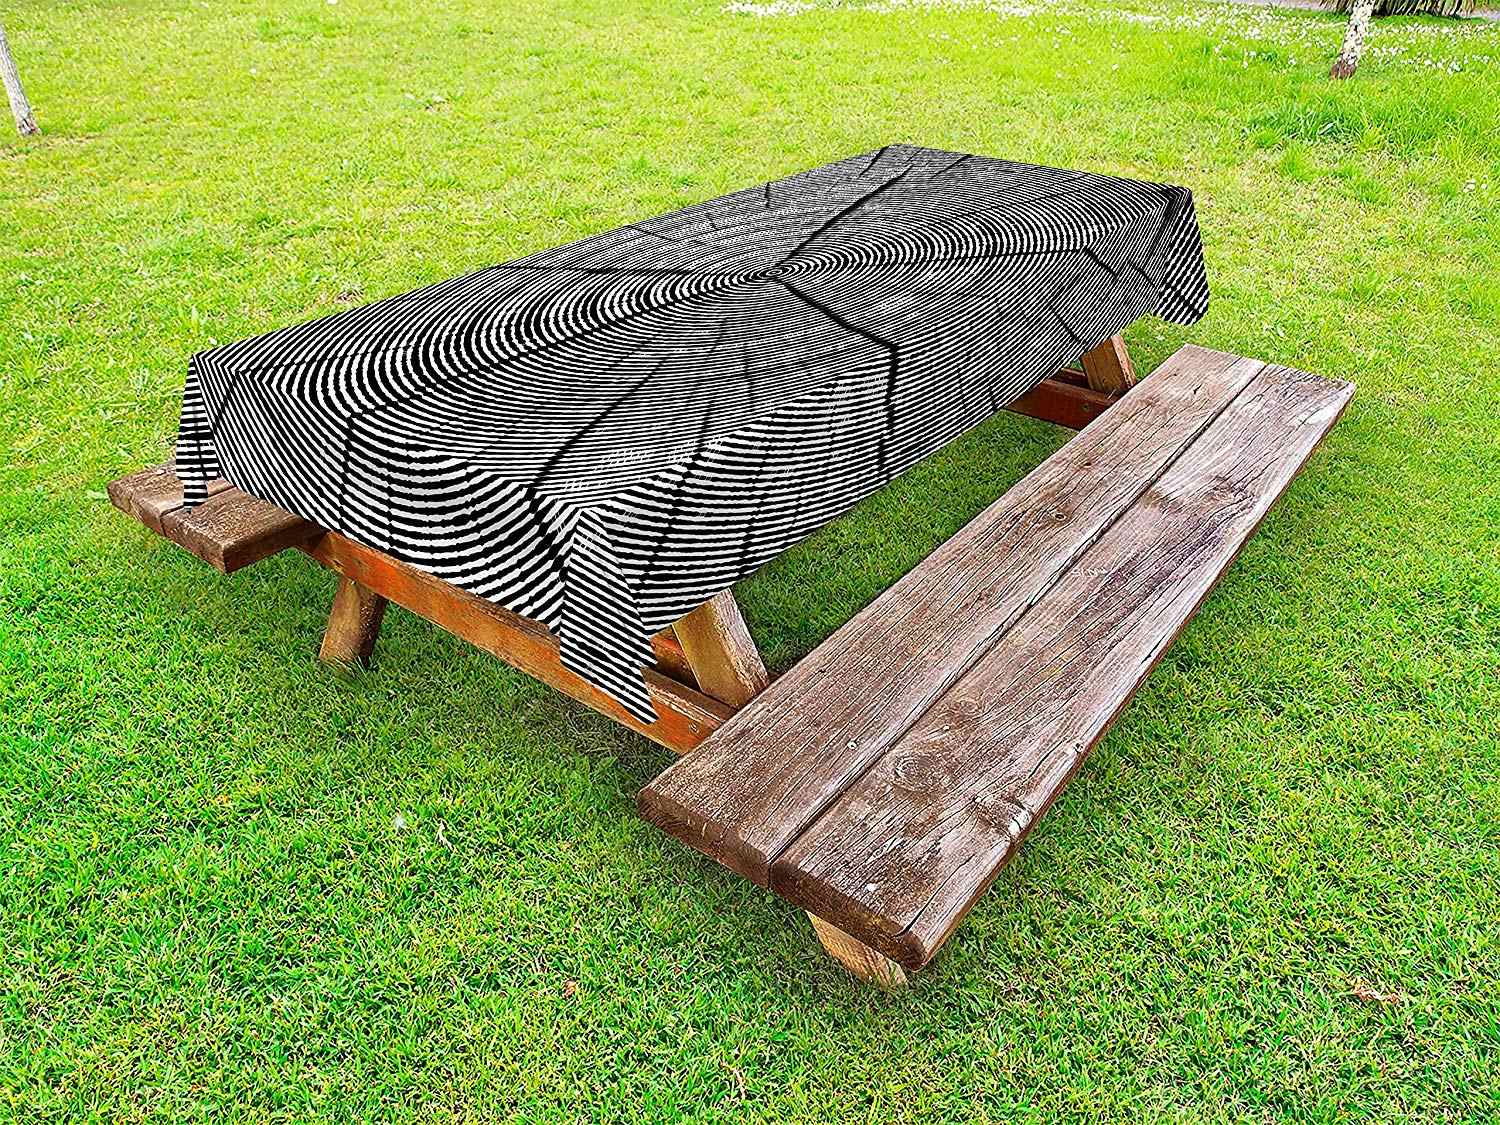 Wood Print Outdoor Tablecloth Sketch Of A Tree Trunk With Age Rings Nature Inspired Monochrome Design Decor Picnic Table Cloth Tablecloths Aliexpress